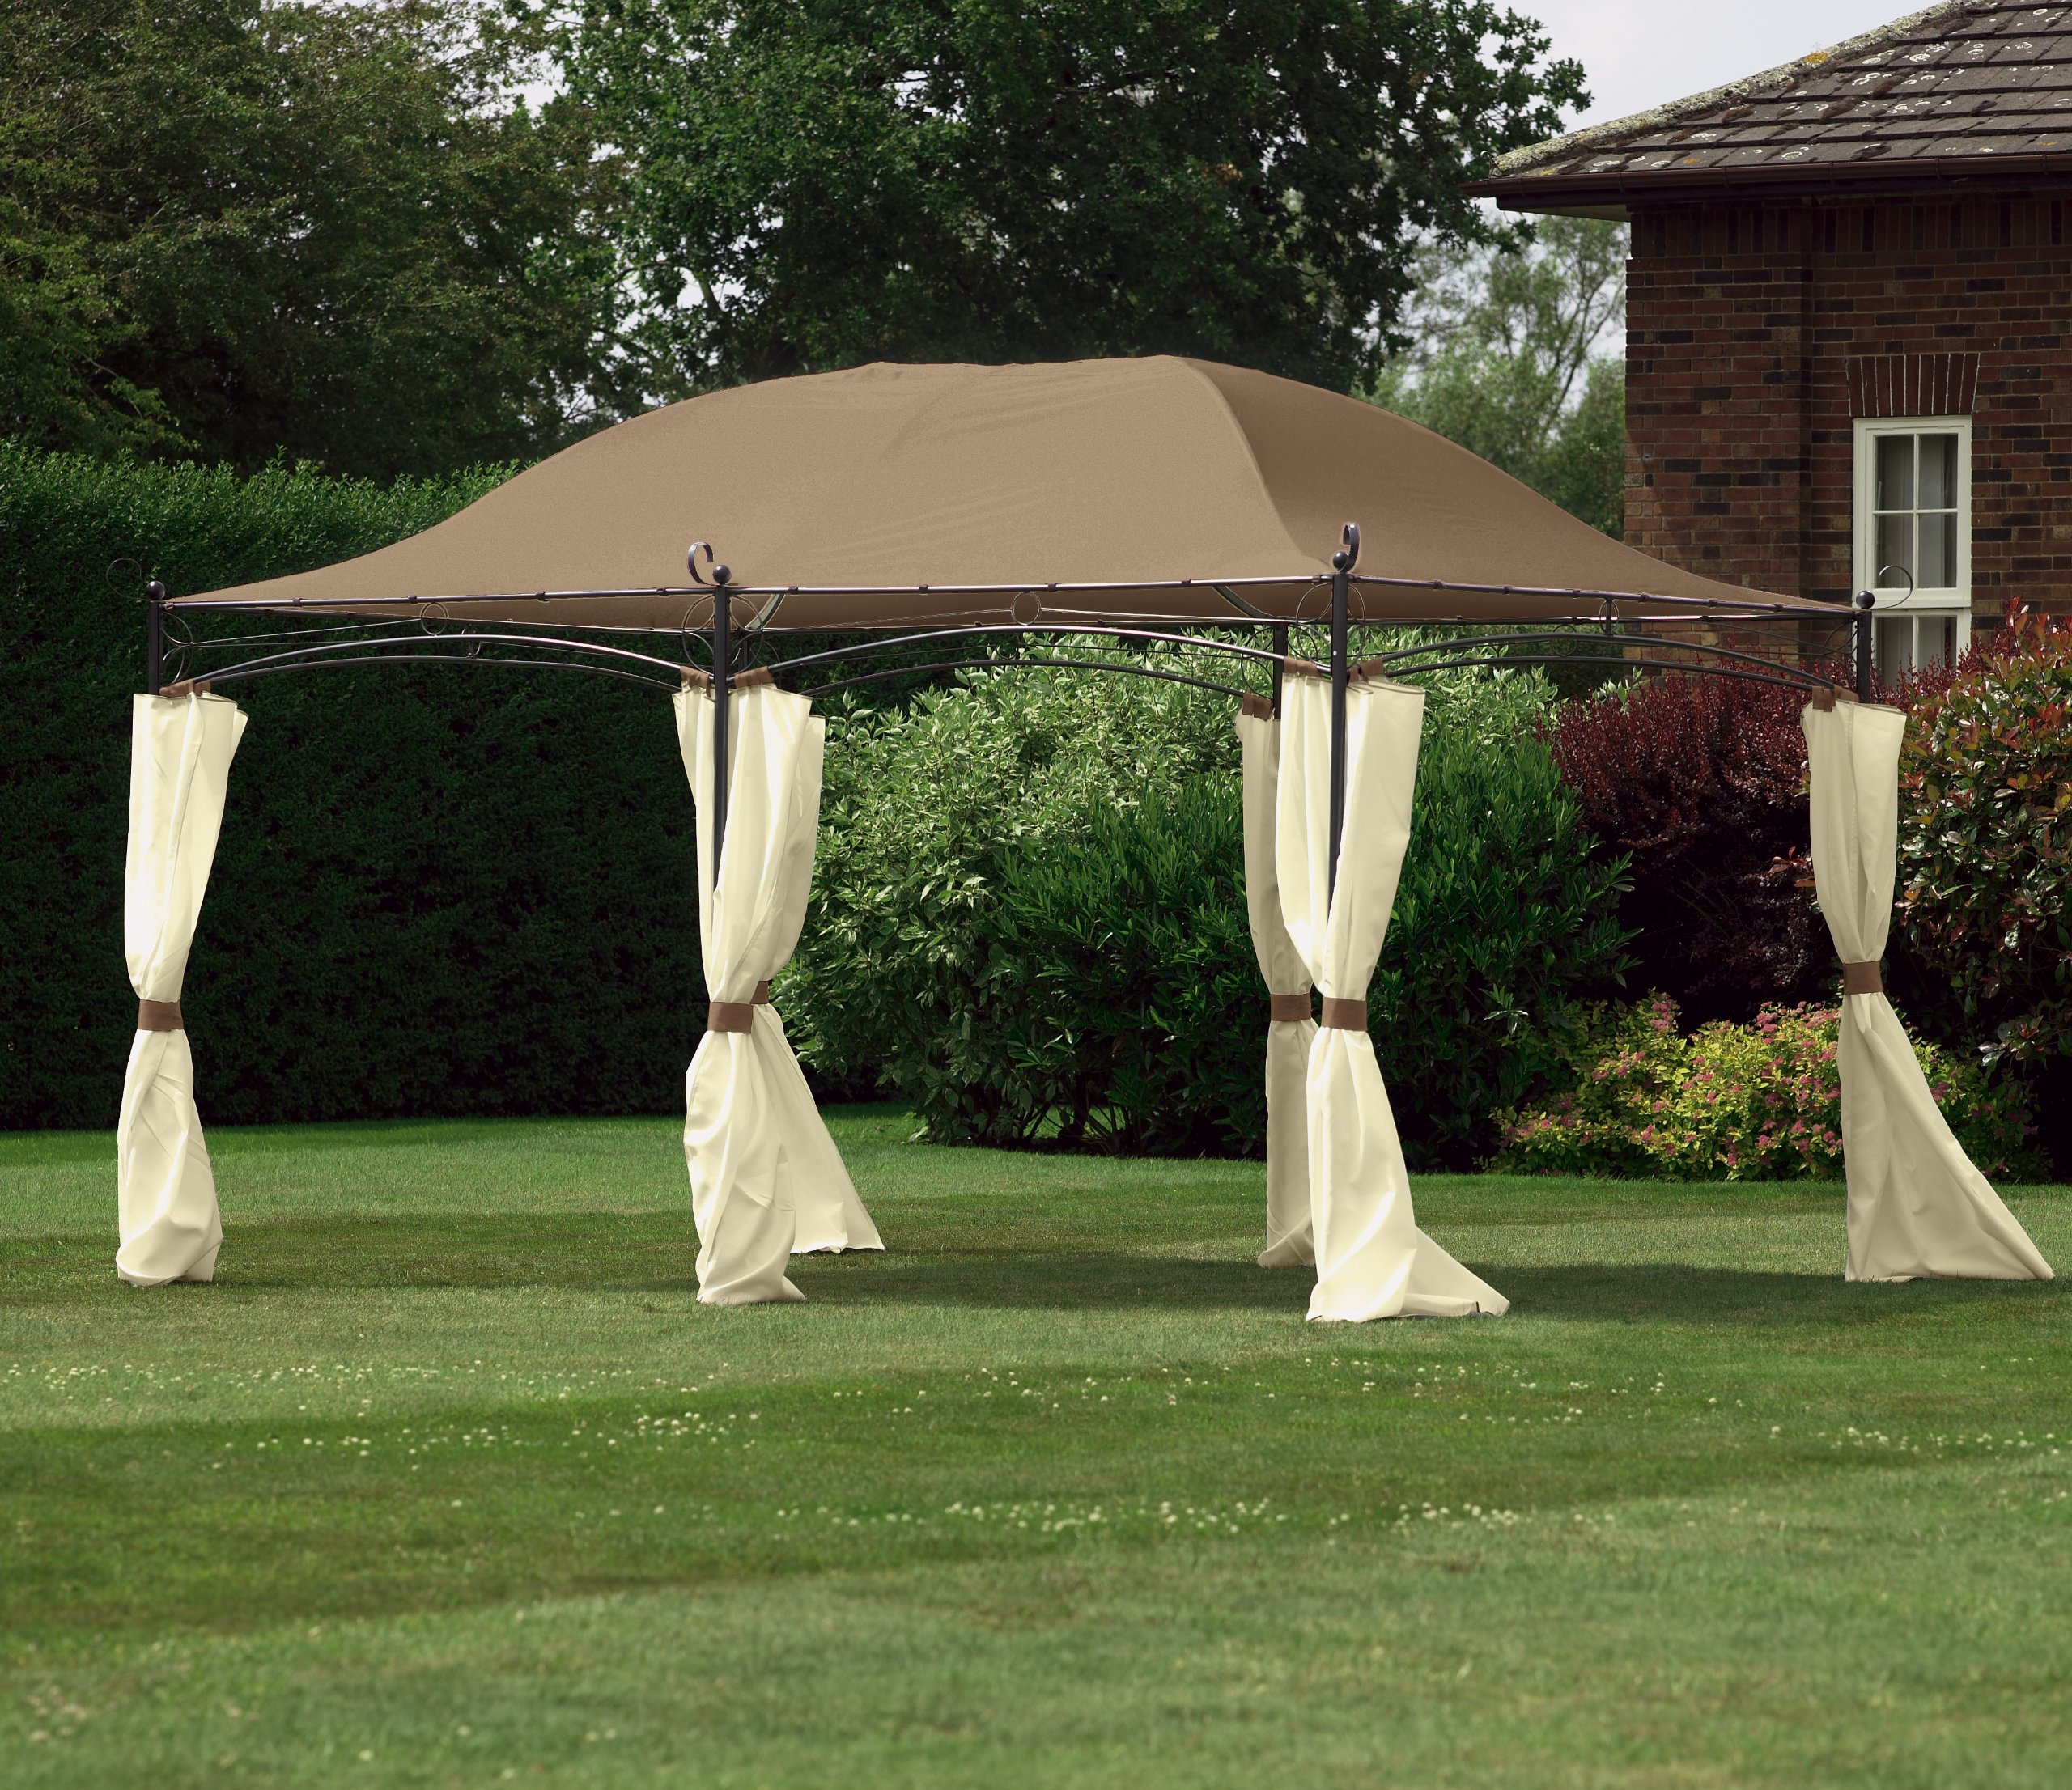 Camelot Regency Grand Gazebo - Carpa (4 m): Amazon.es: Jardín